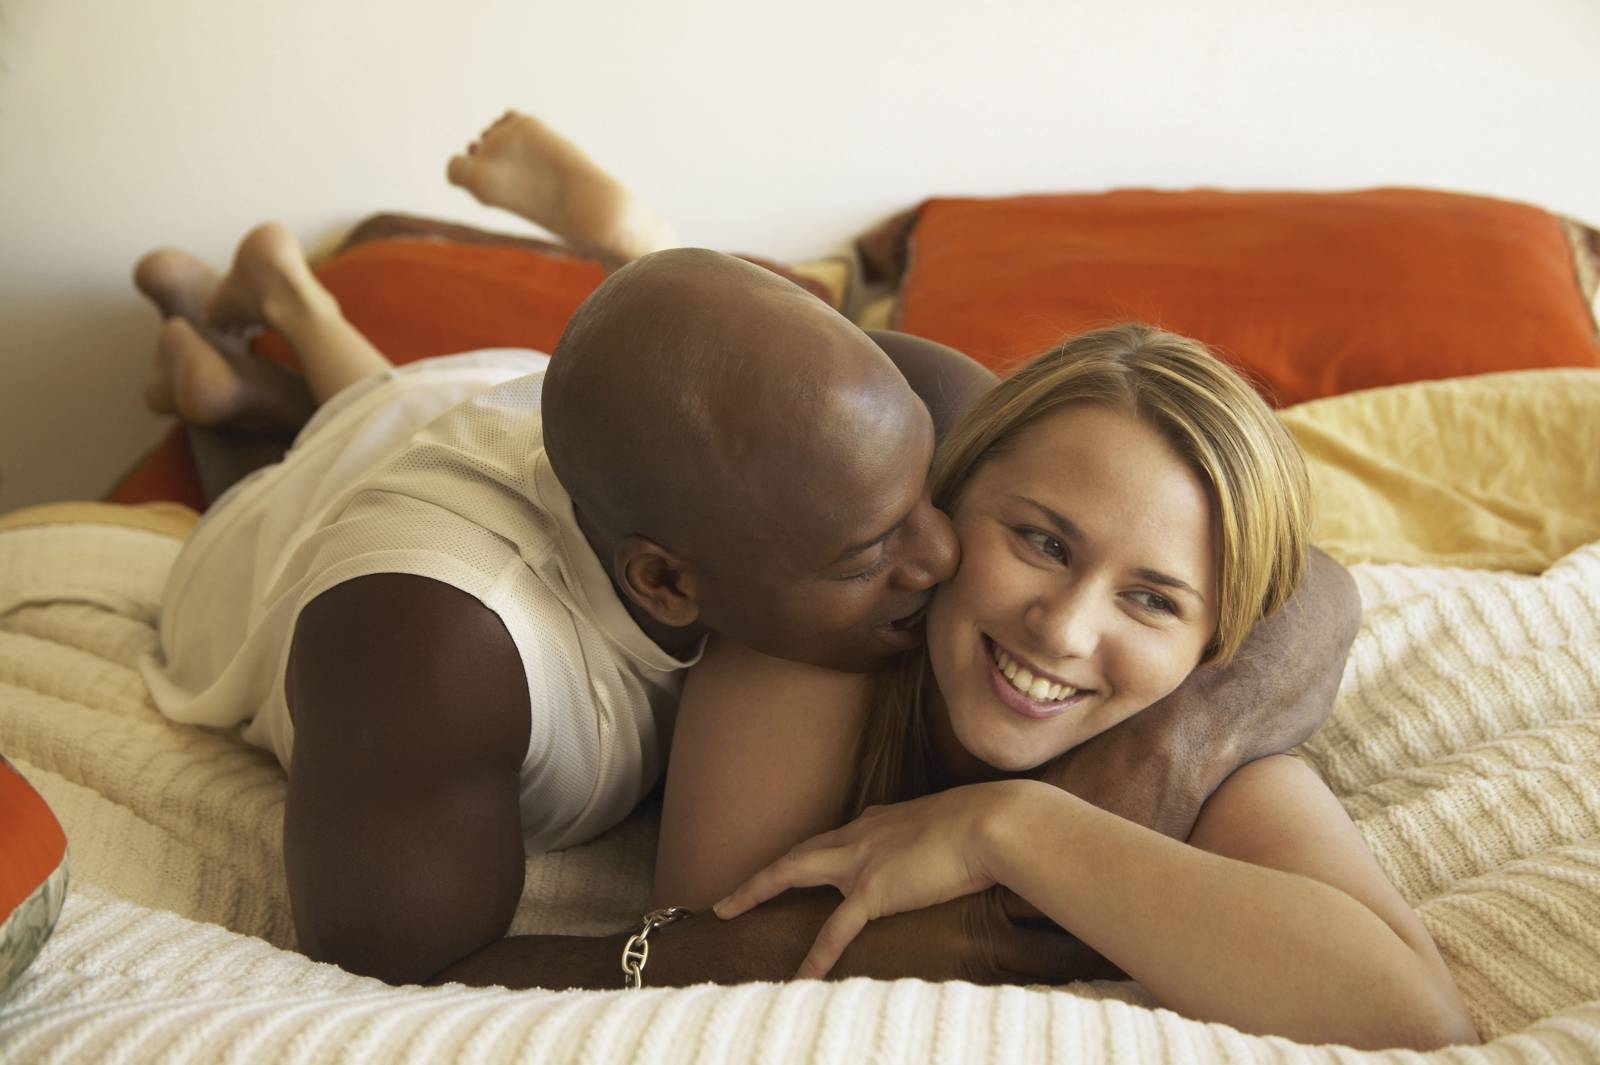 White woman tricked interracial